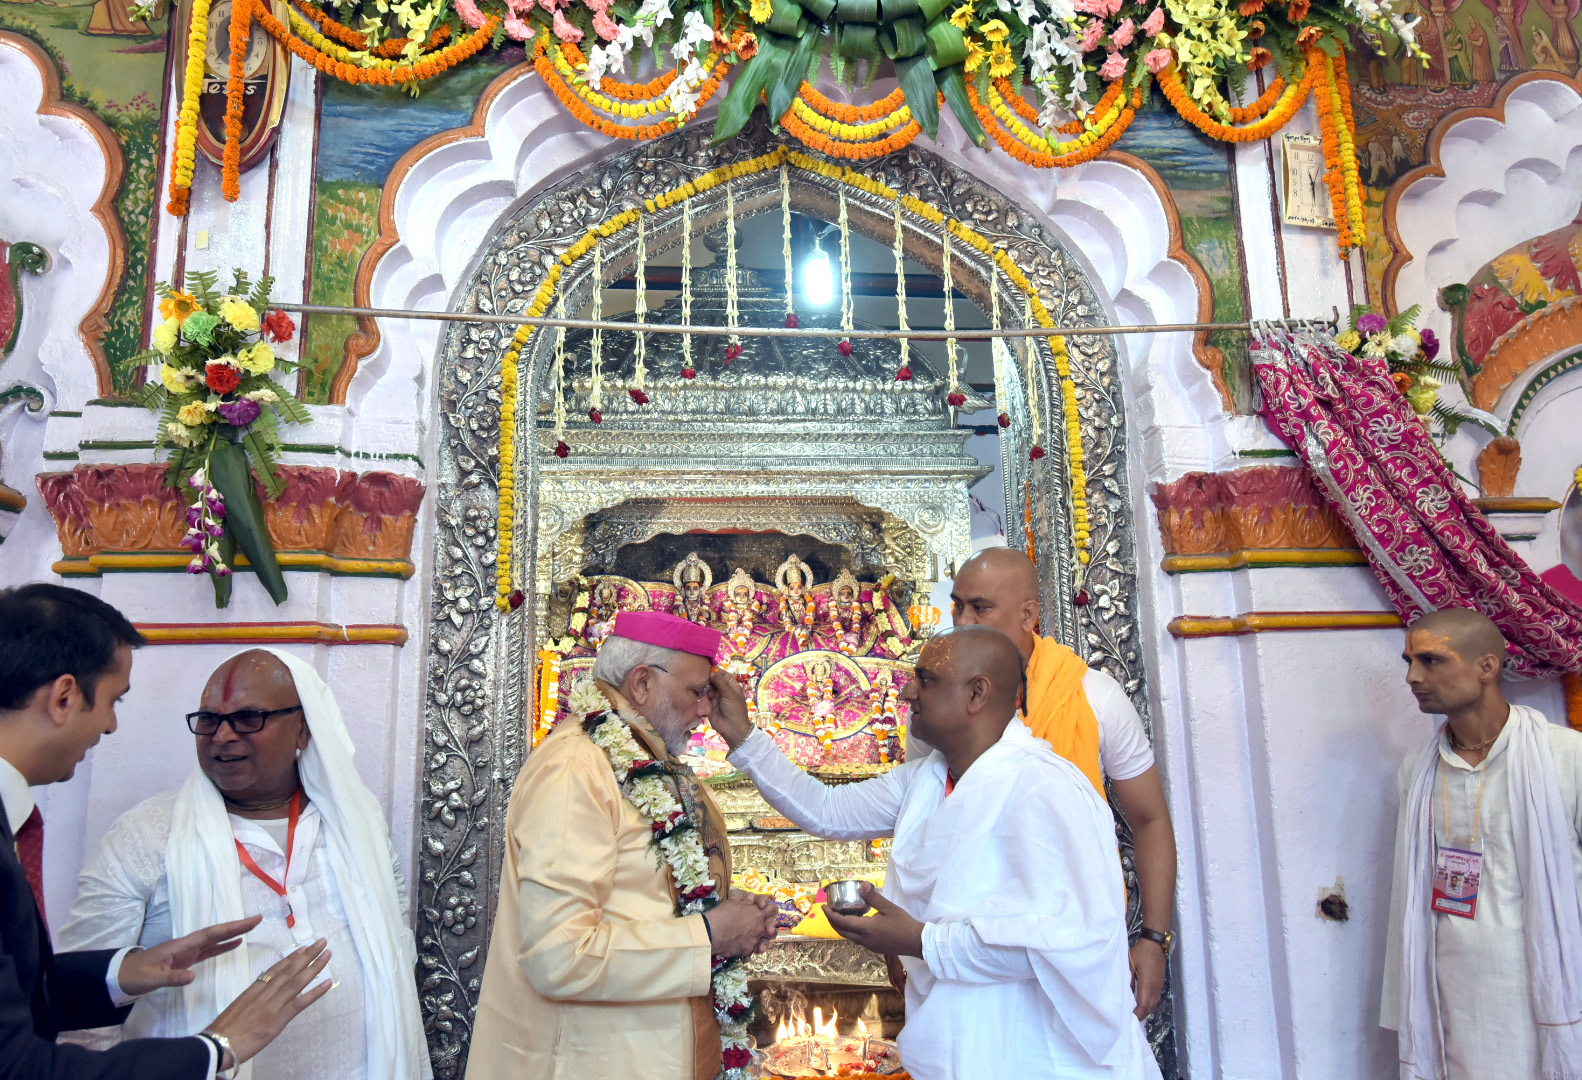 The Prime Minister, Shri Narendra Modi offering prayers at Janaki Mandir, in Janakpur, Nepal on May 11, 2018.